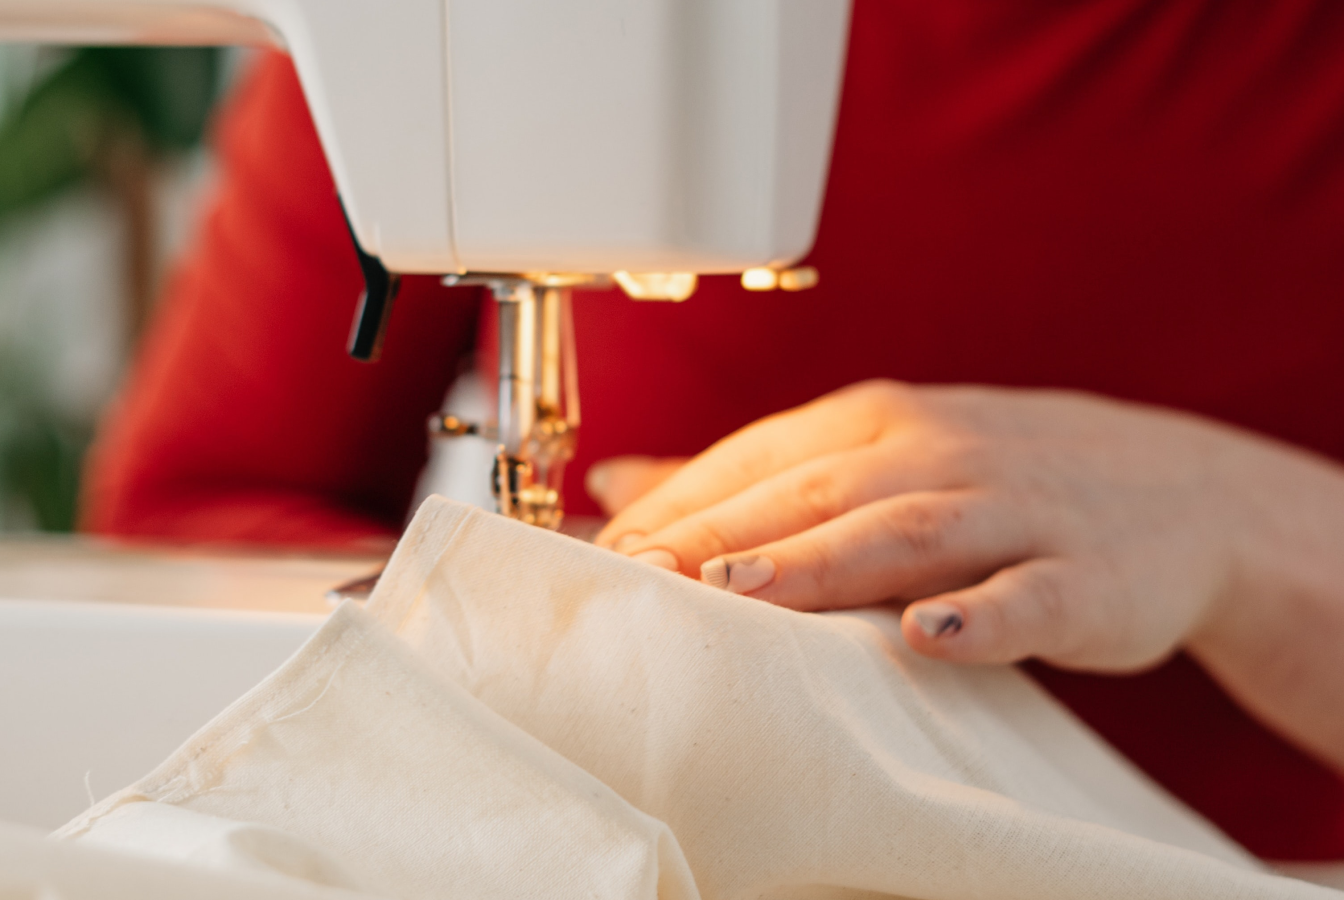 A person sewing an sustainable dress to give as a gift.